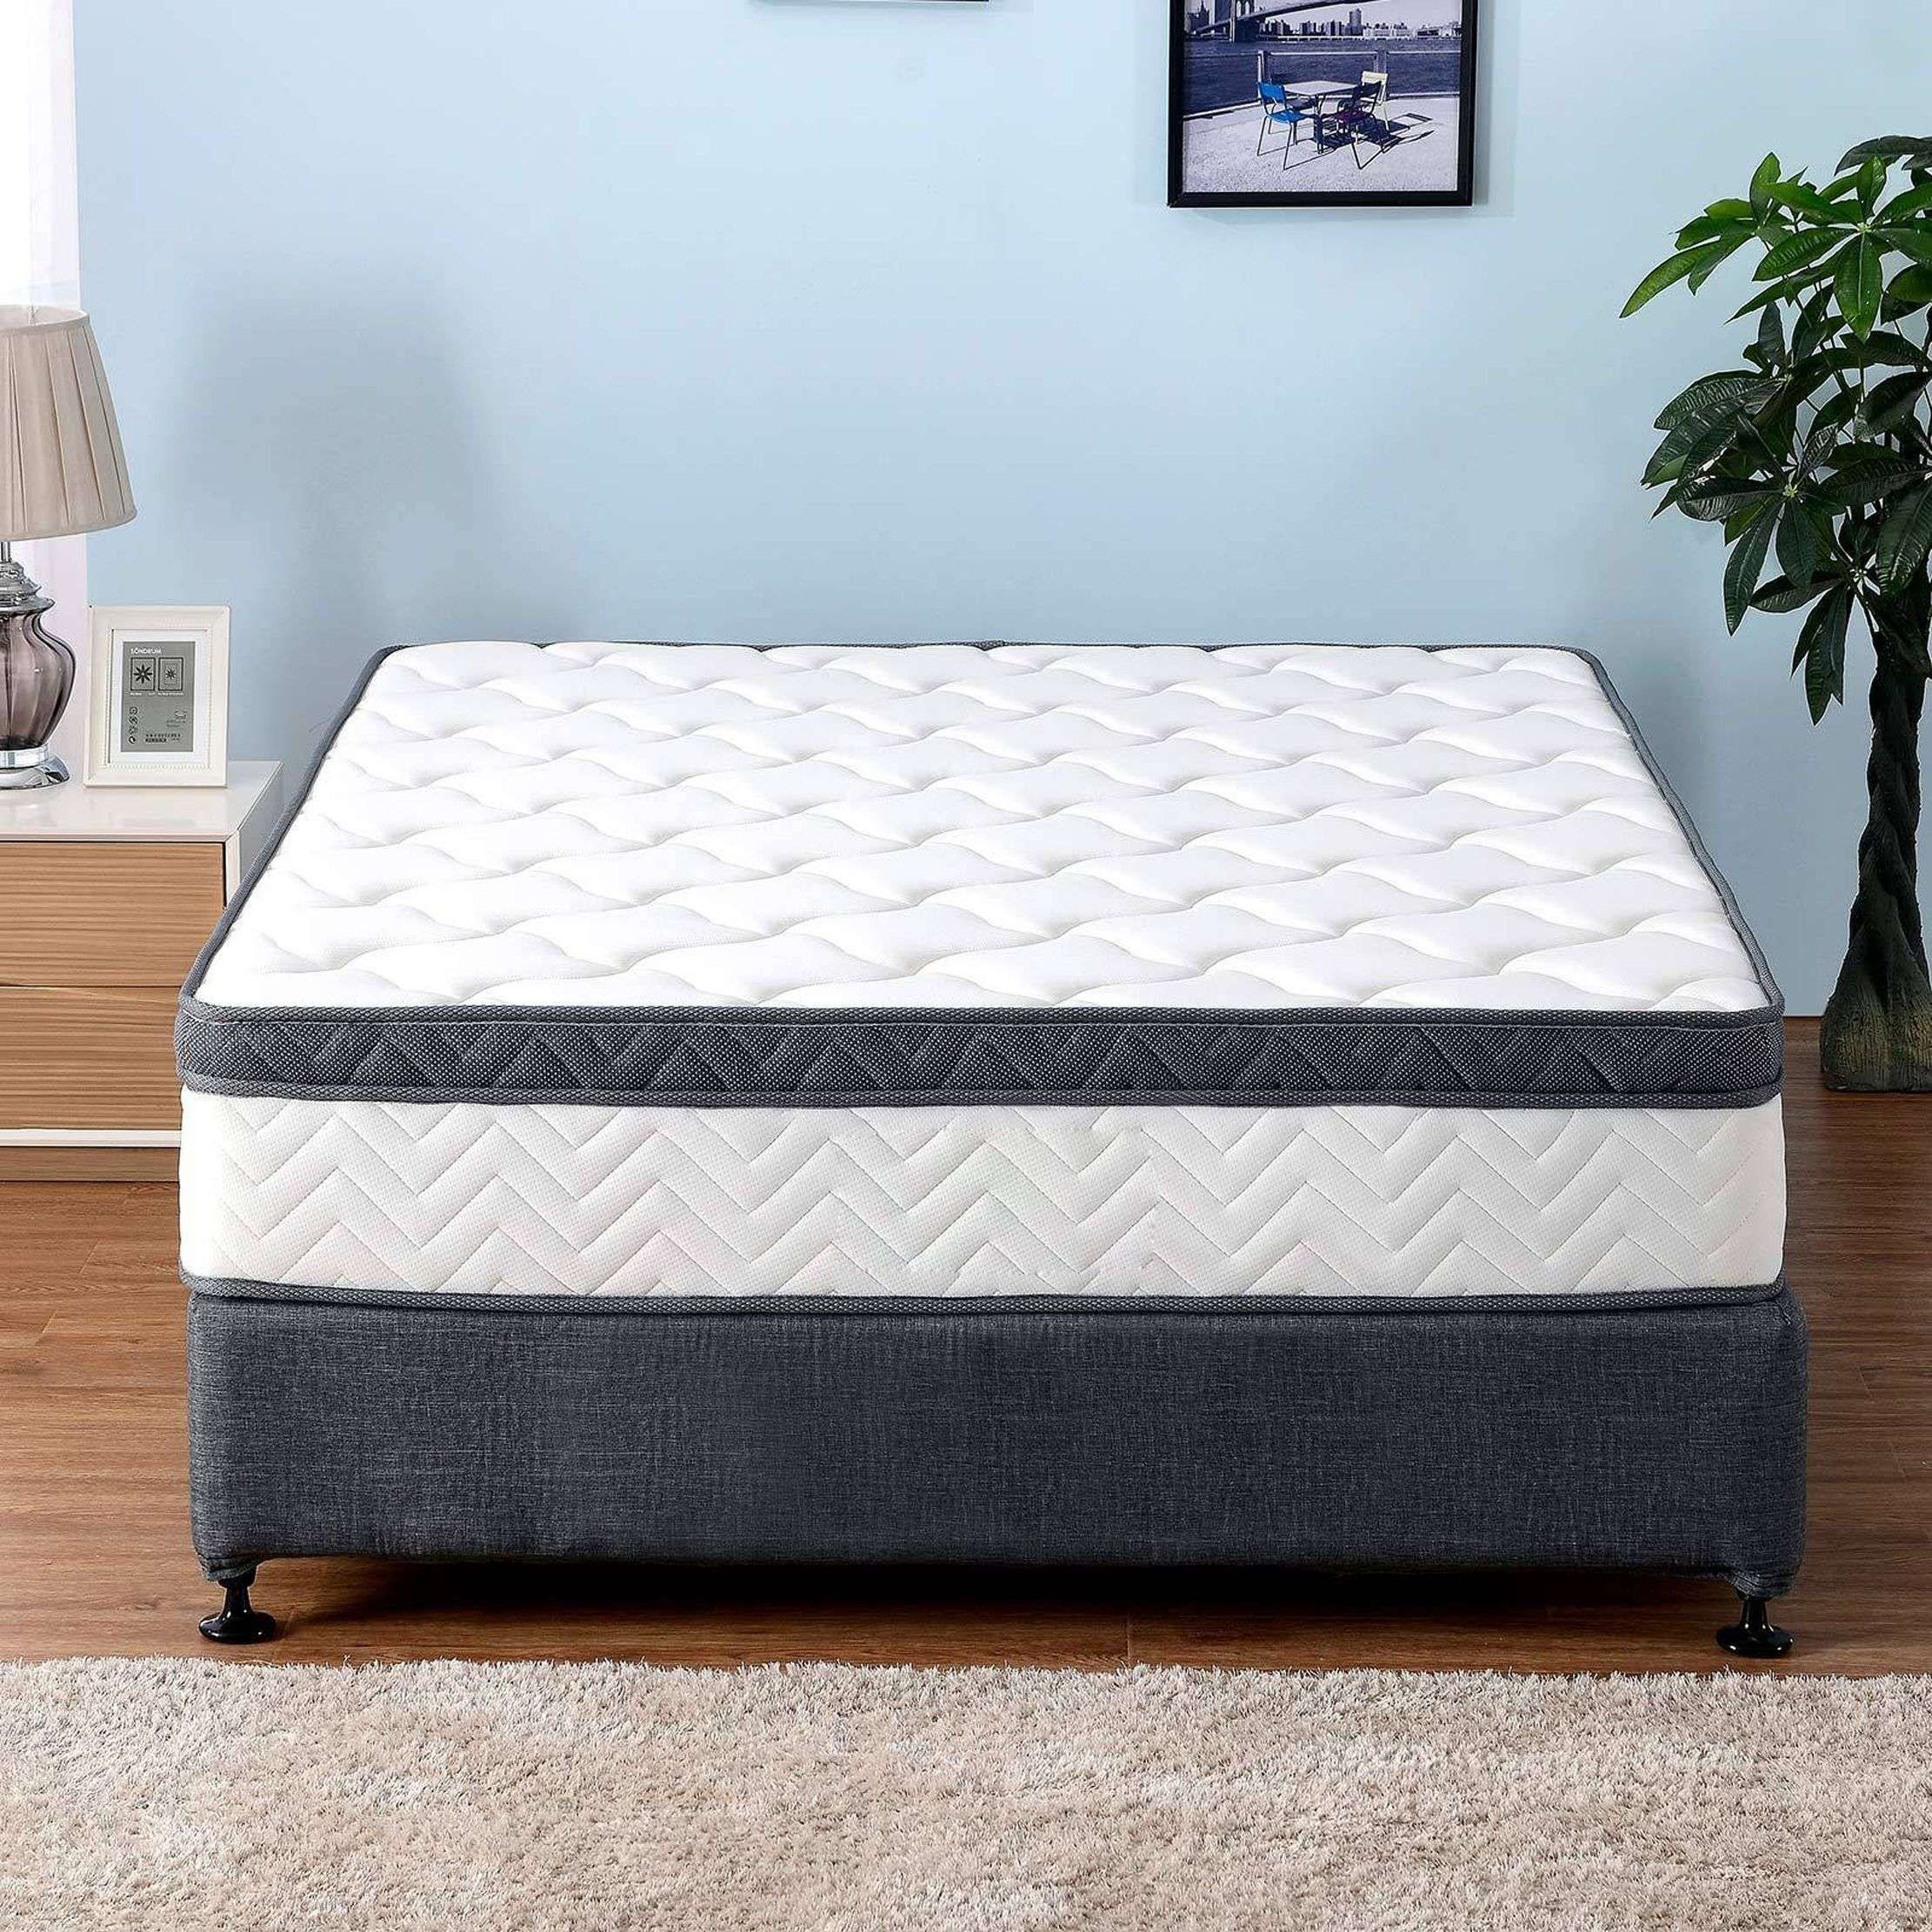 Gusseted Sofa Bed Mattress Pad Mattress Mattress Pad Sofa Bed Mattress